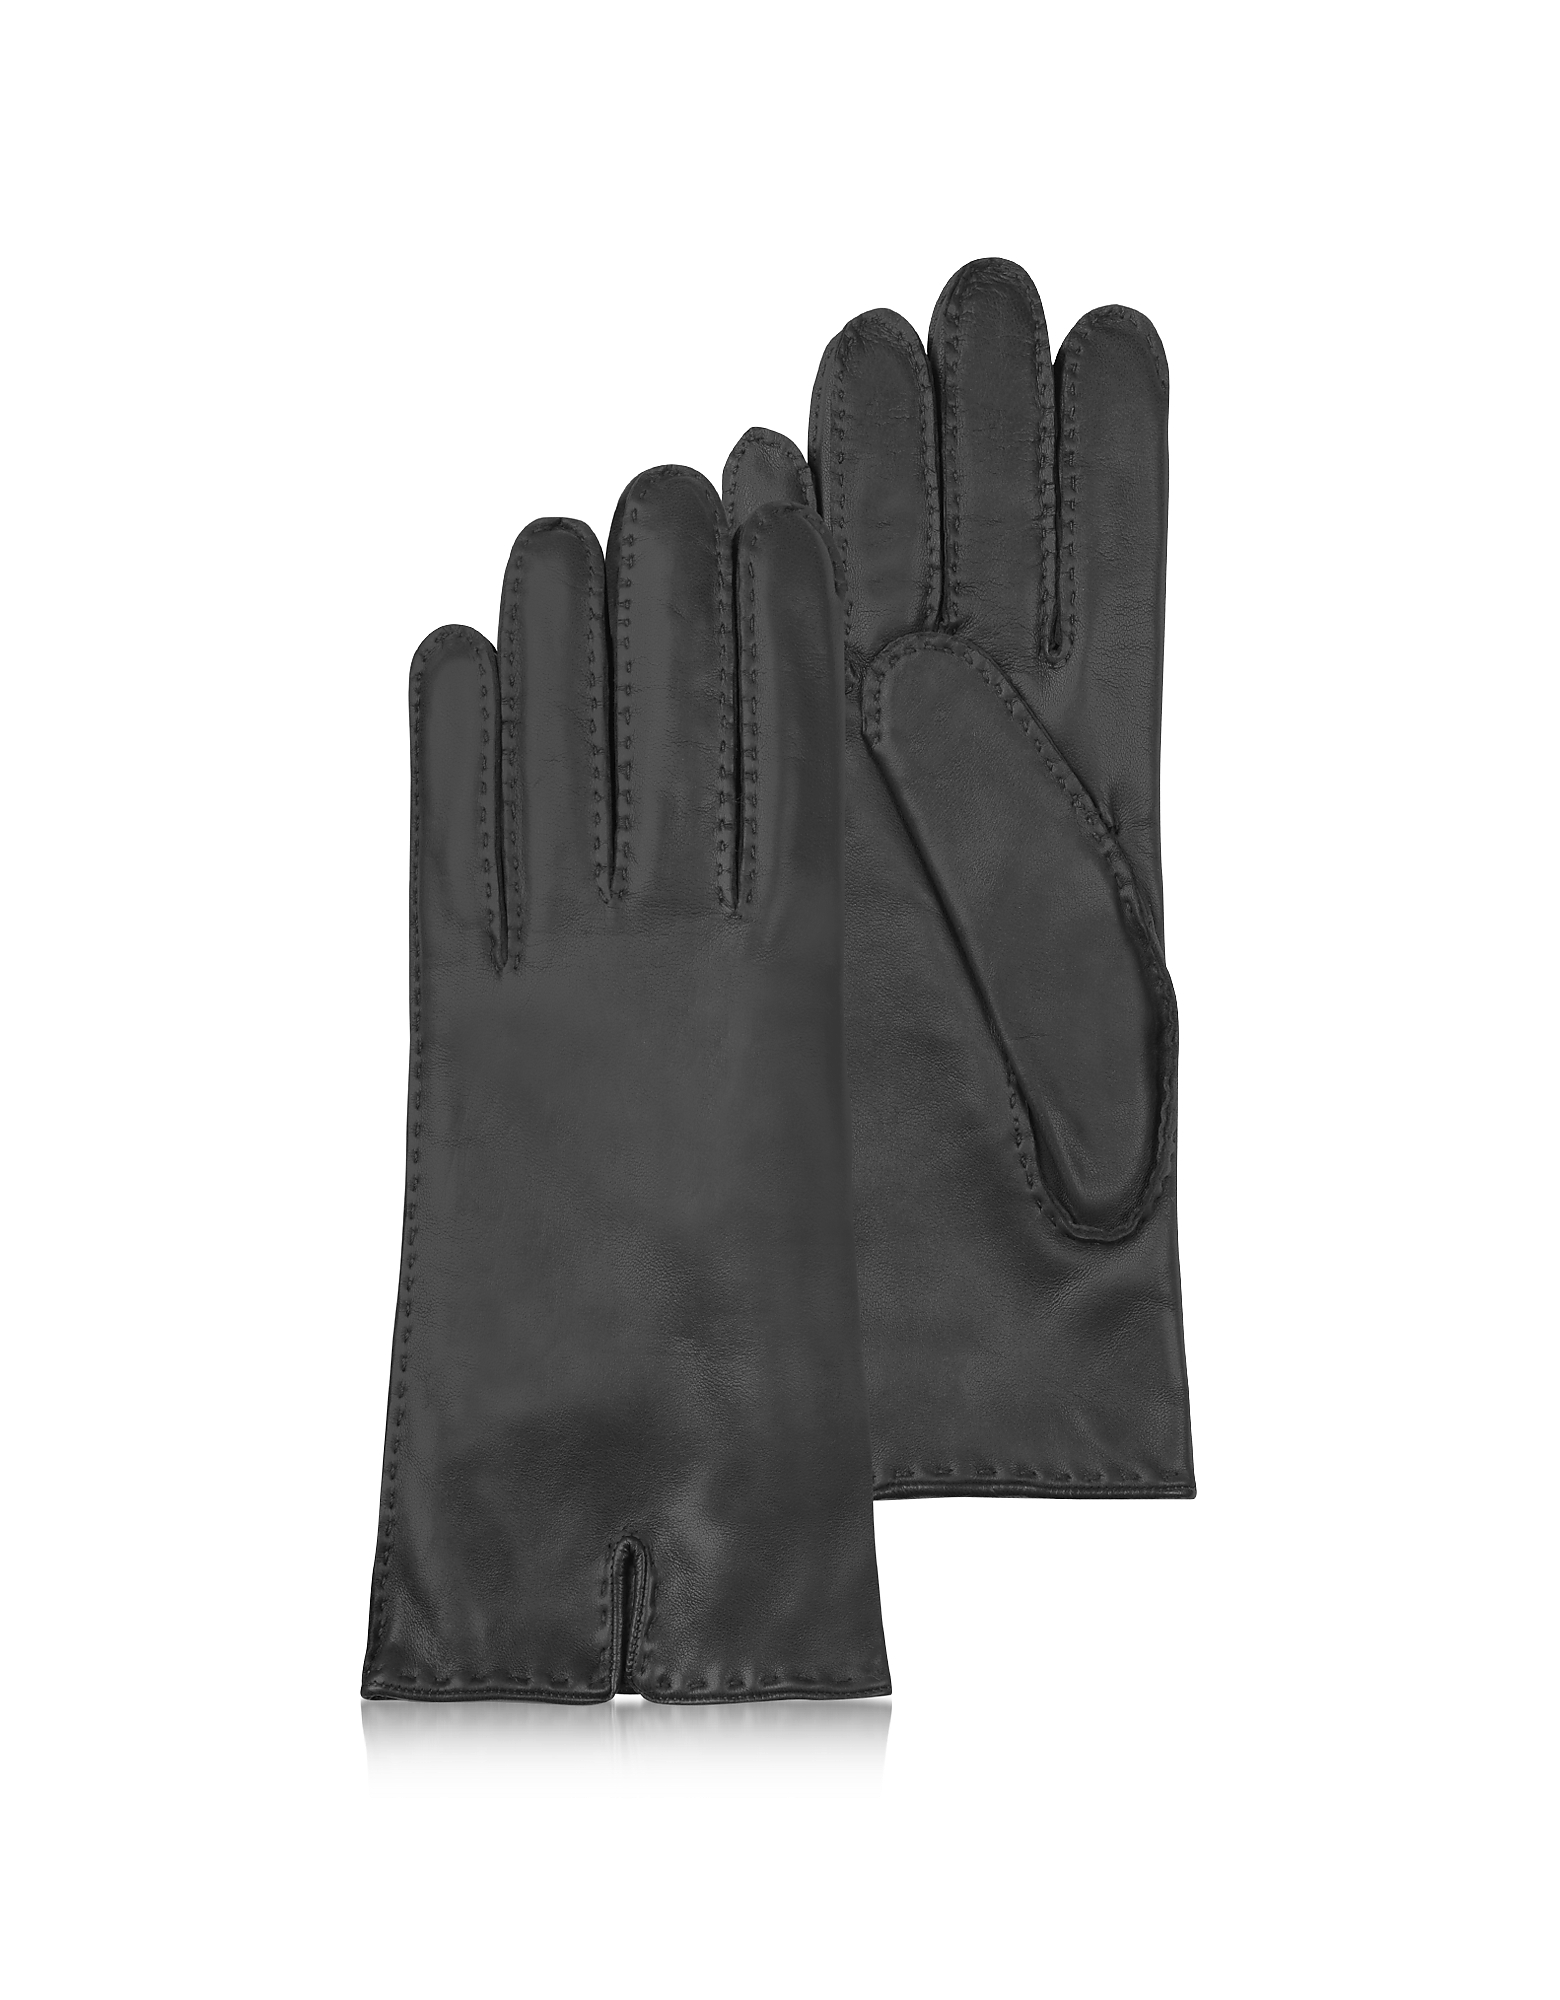 Women's Cashmere Lined Black Italian Leather Gloves от Forzieri.com INT